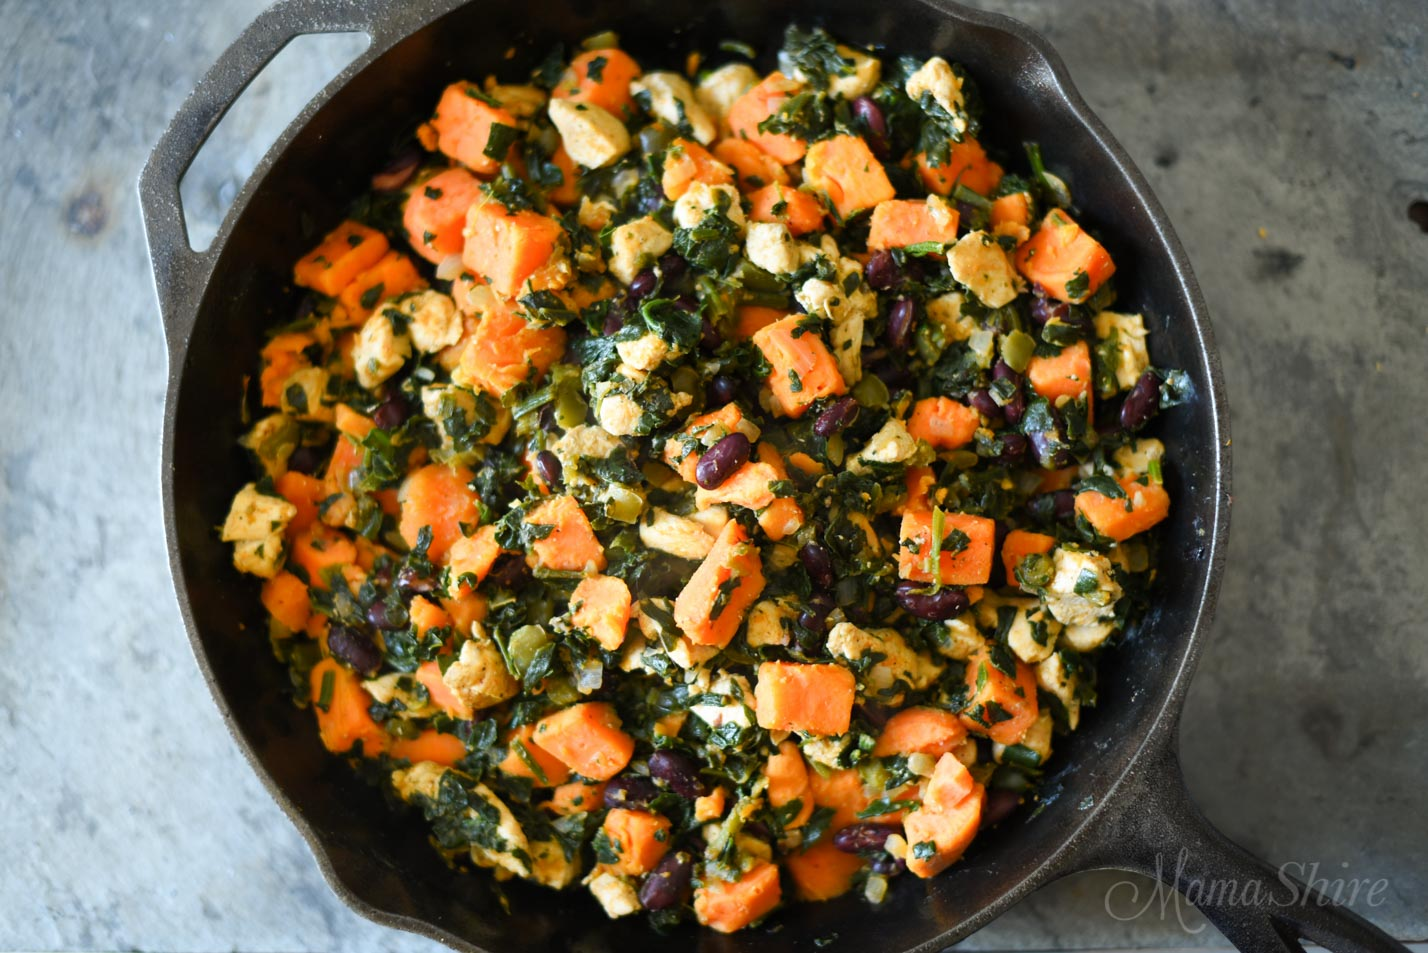 Chipotle Chicken with Sweet Potatoes - MamaShire.com